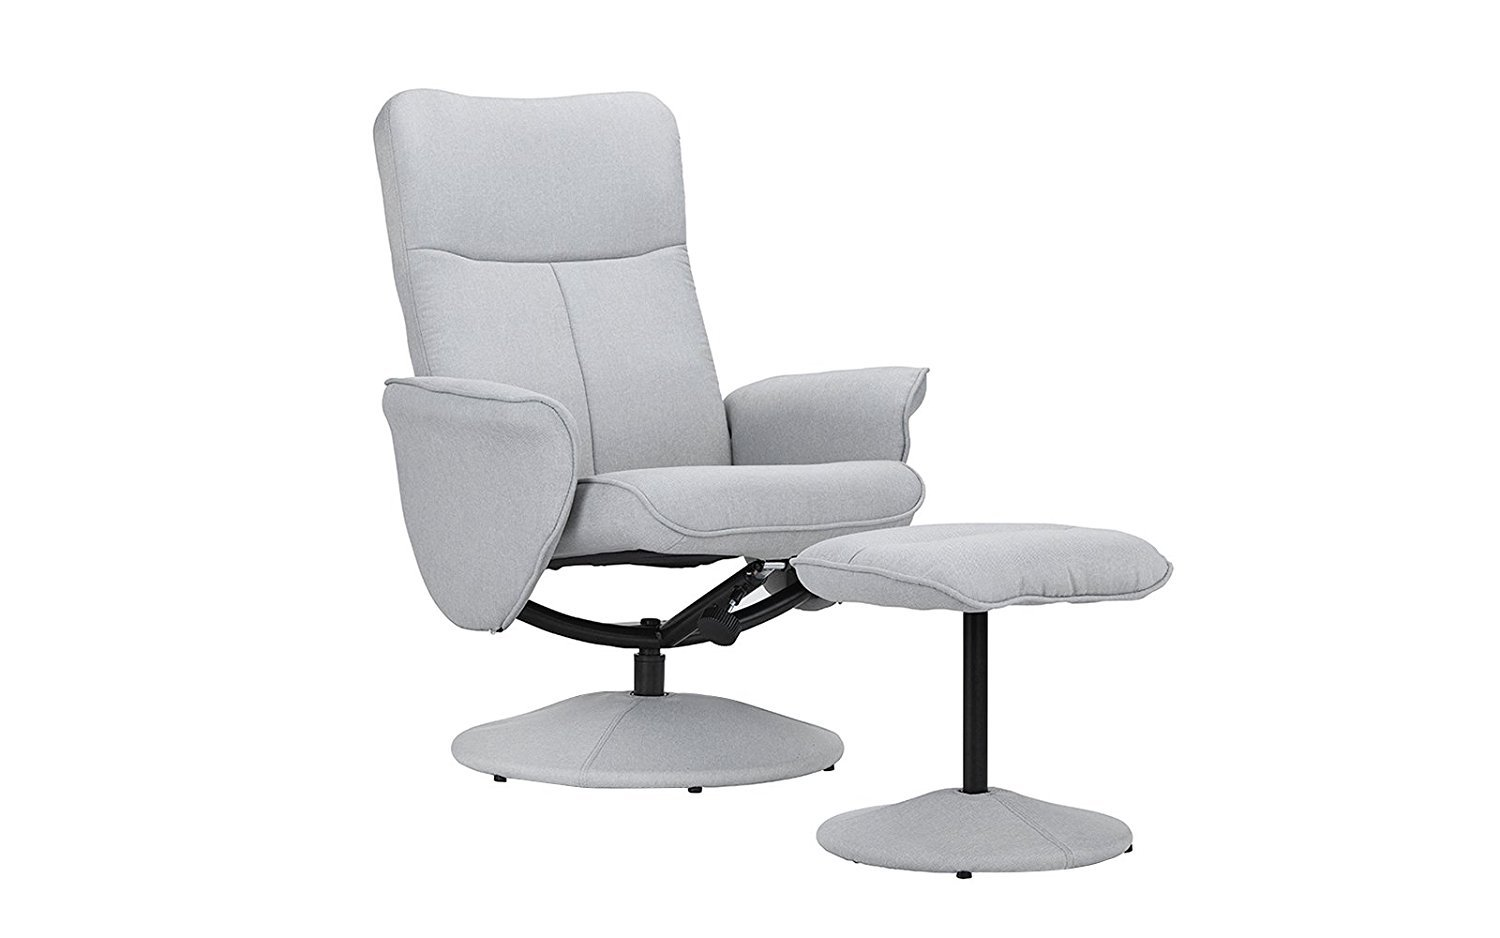 Astounding Details About Fabric Modern Swivel Office Chair Gaming Chair With Recliner And Footstool Gmtry Best Dining Table And Chair Ideas Images Gmtryco